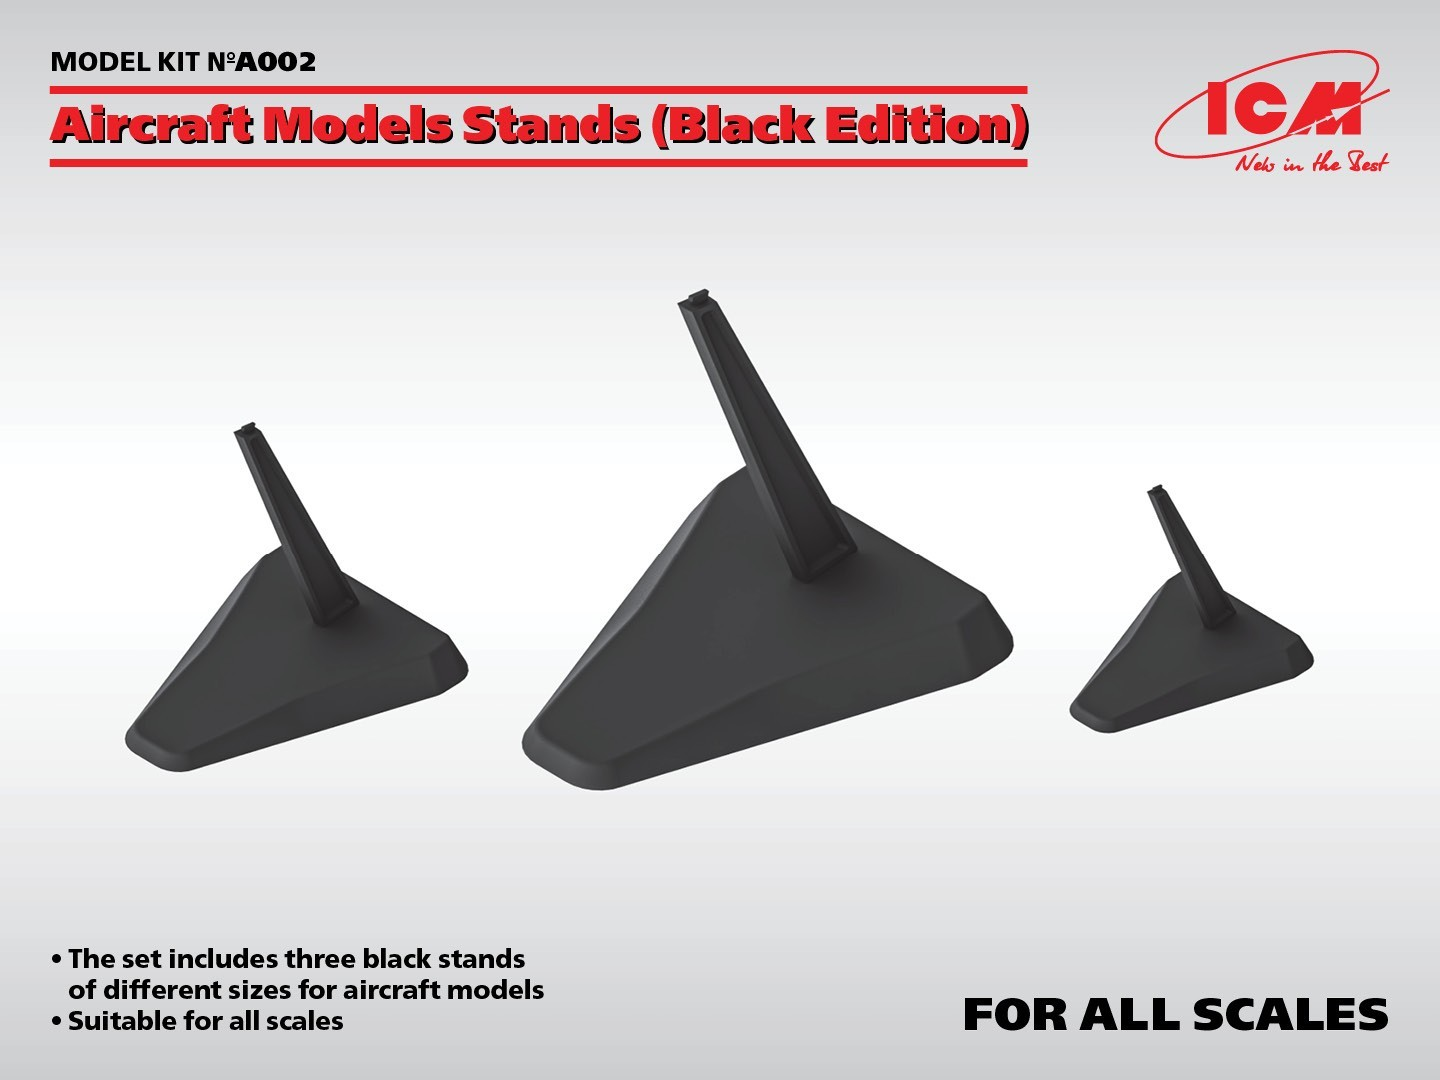 Aircraft Models Stands (Black Edition)